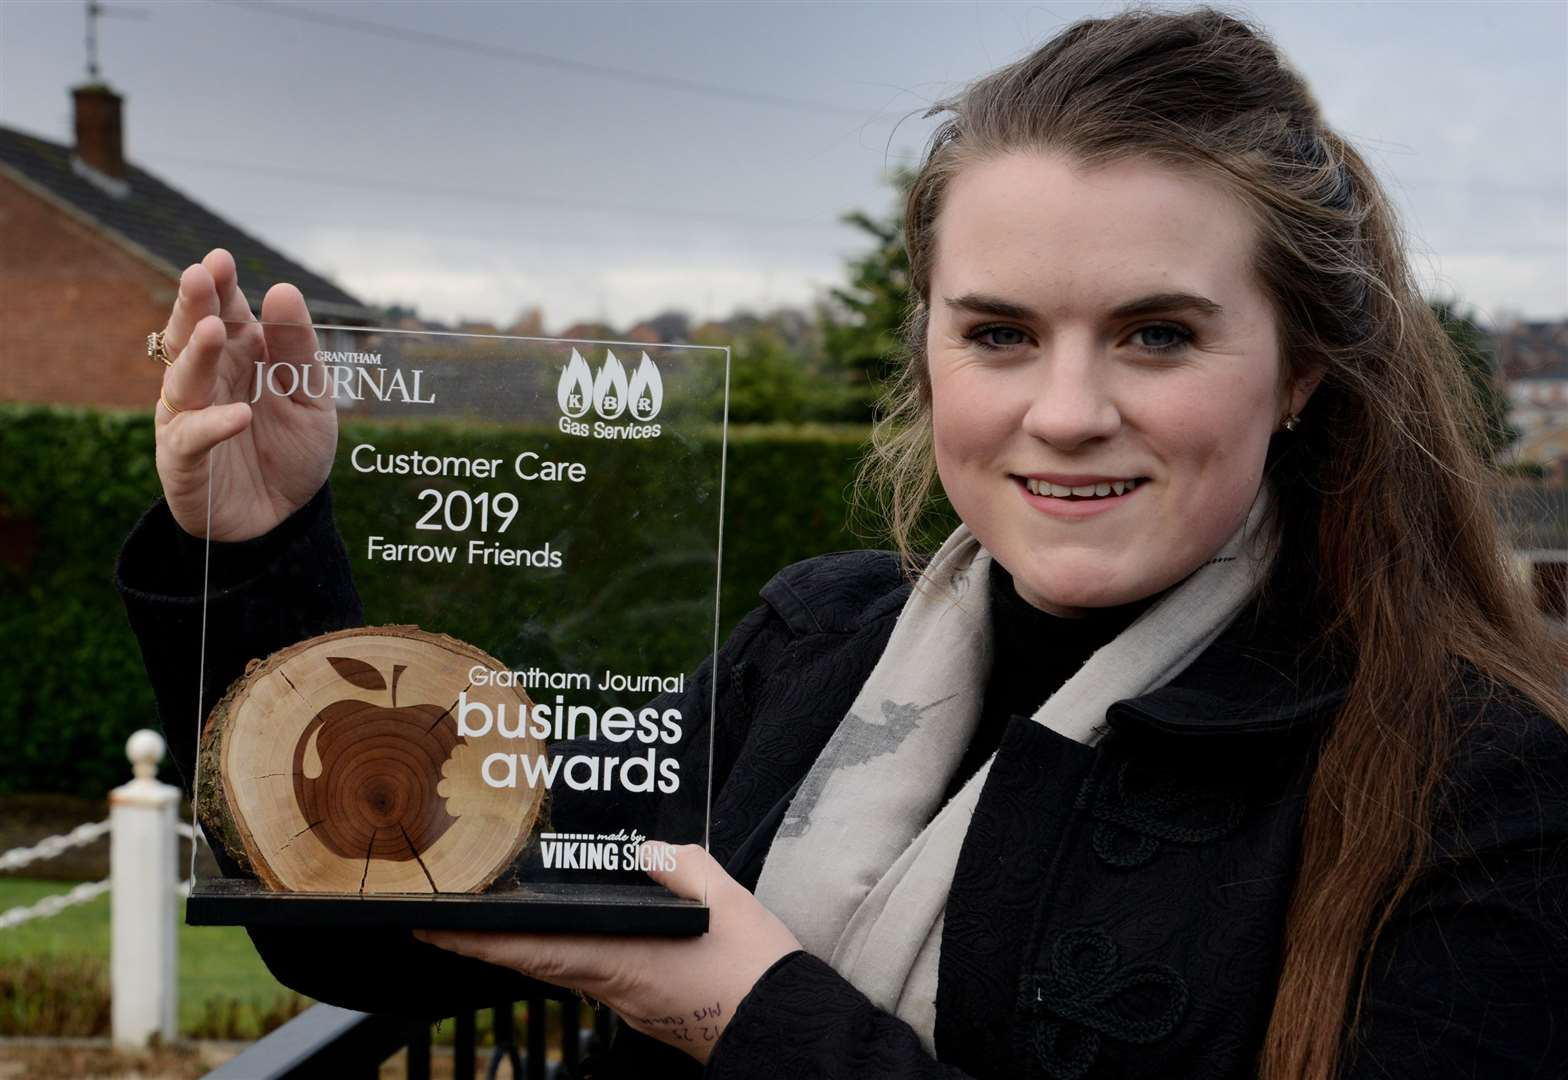 Grantham's 'Customer Care' award winner reveals what's next for her business